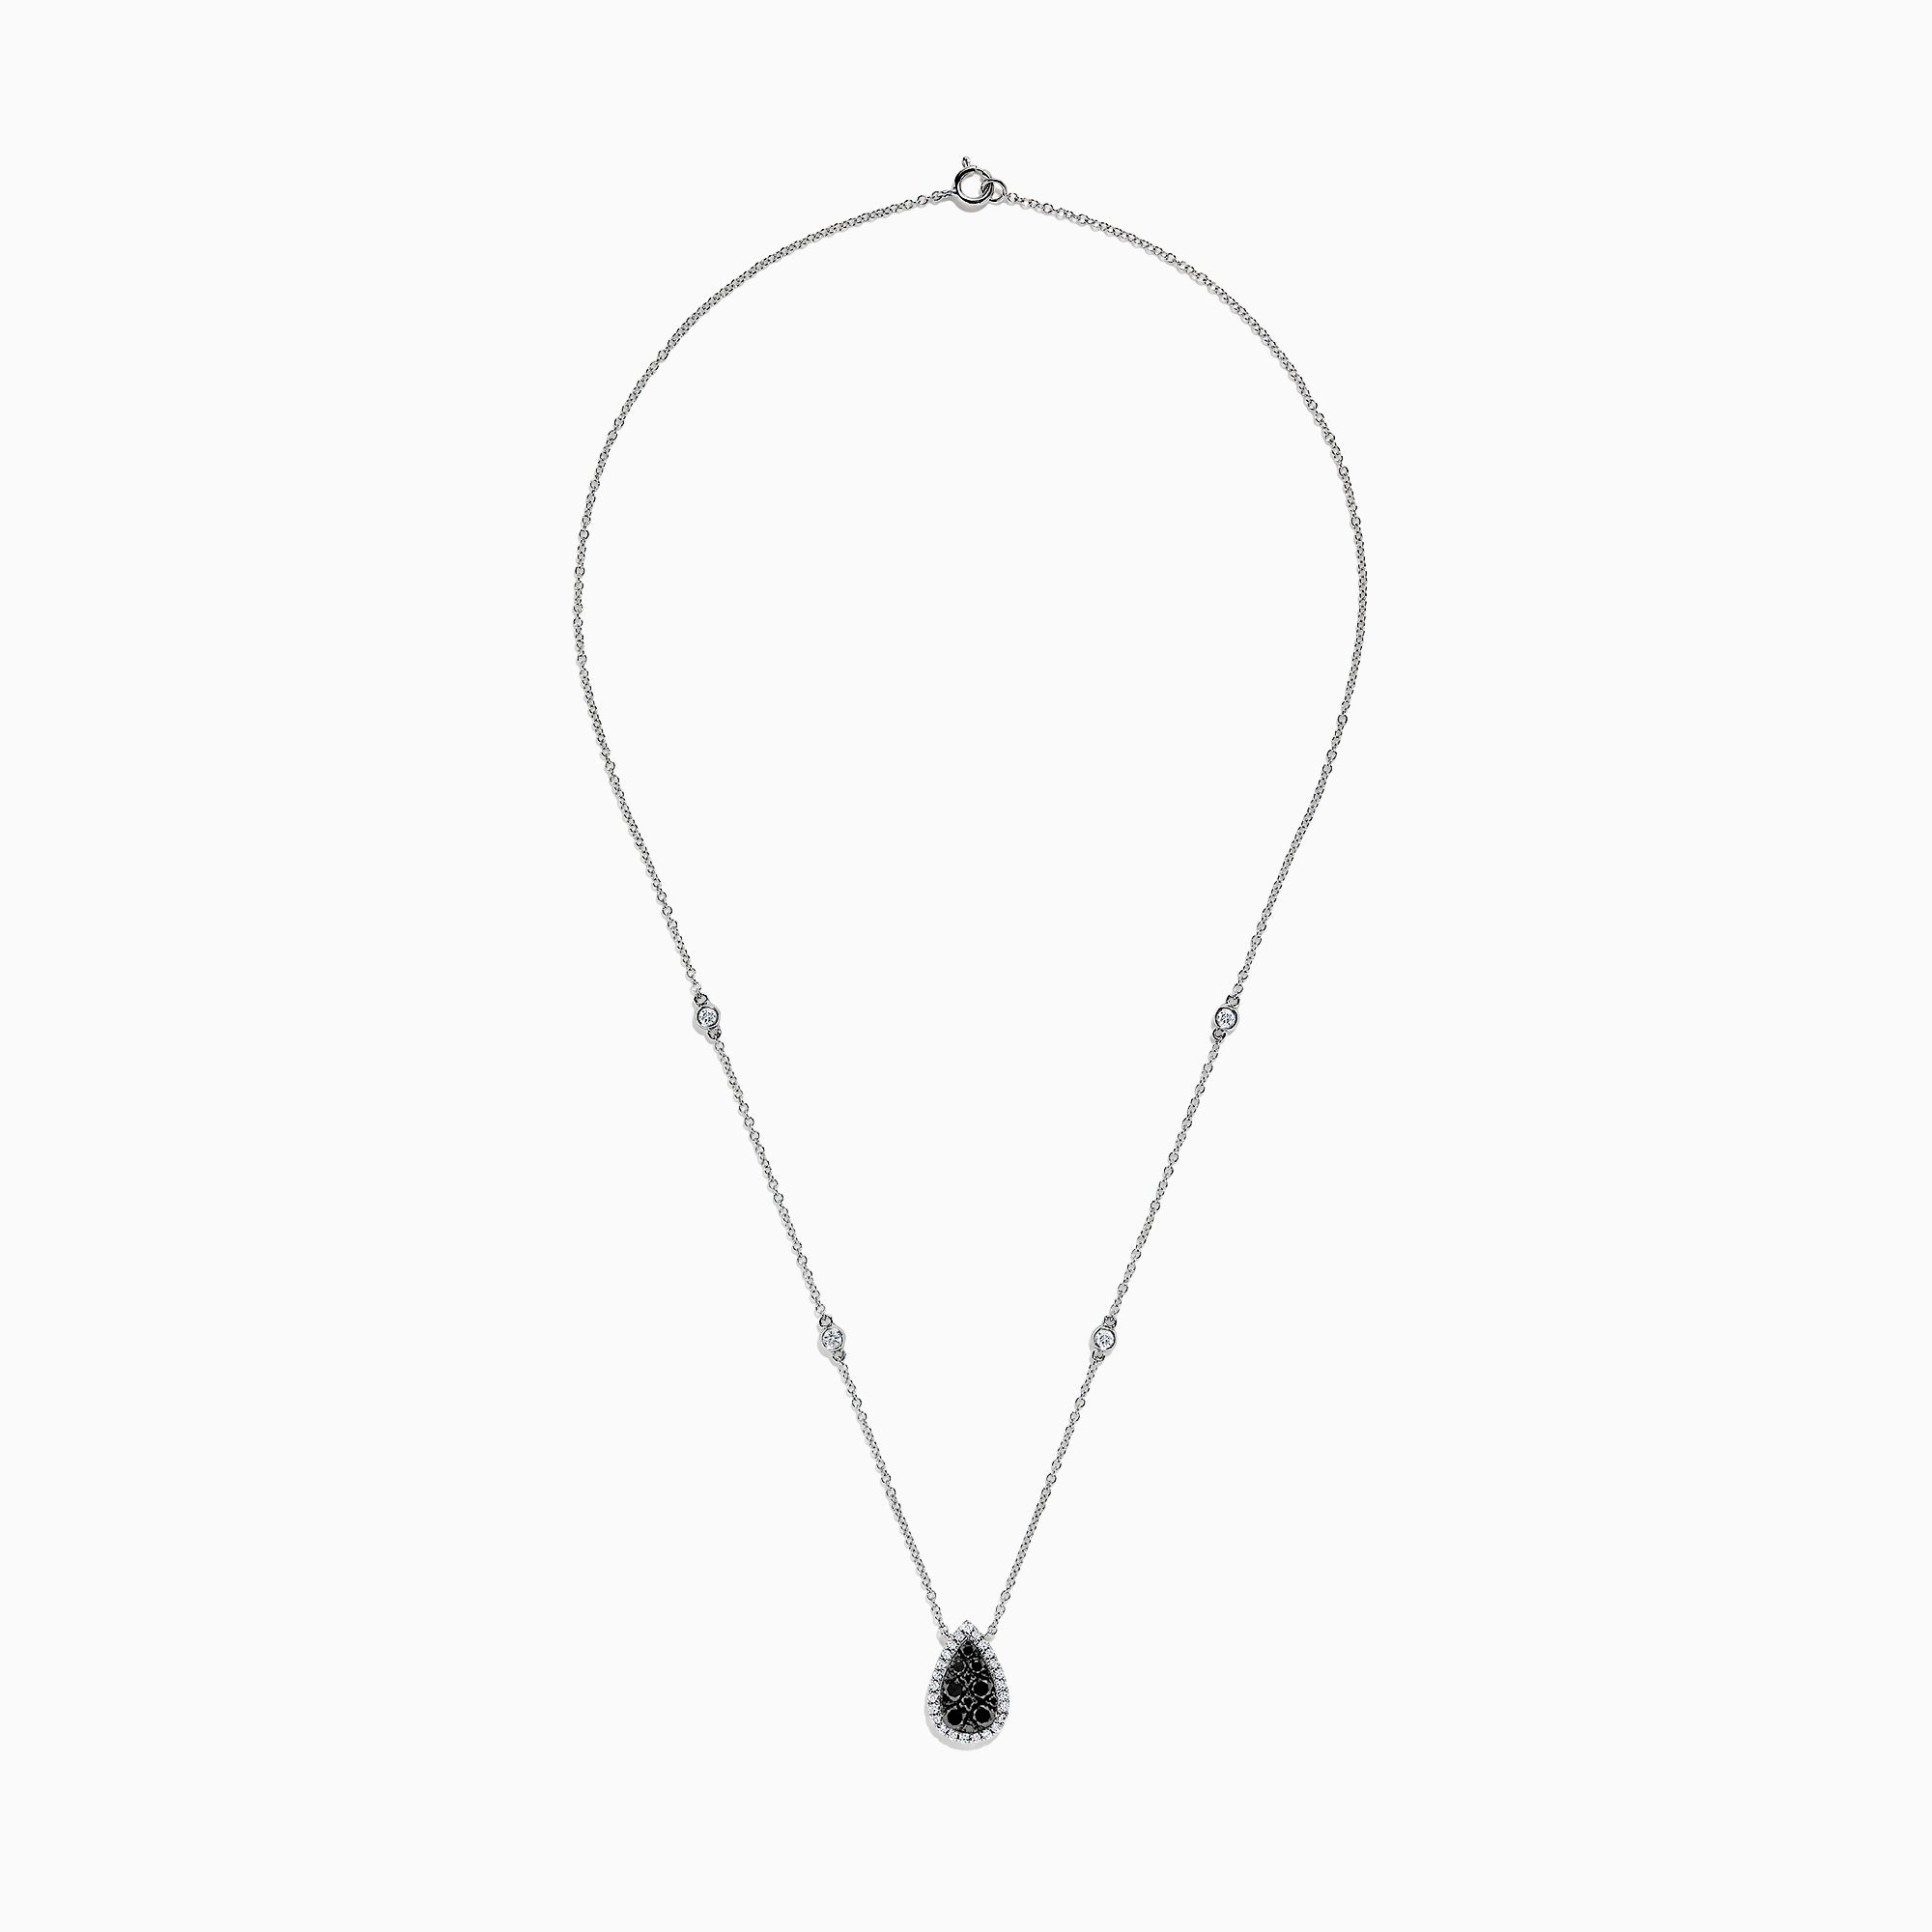 Effy 14K White Gold Black and White Diamond Pear Shaped Necklace, 1.09 TCW